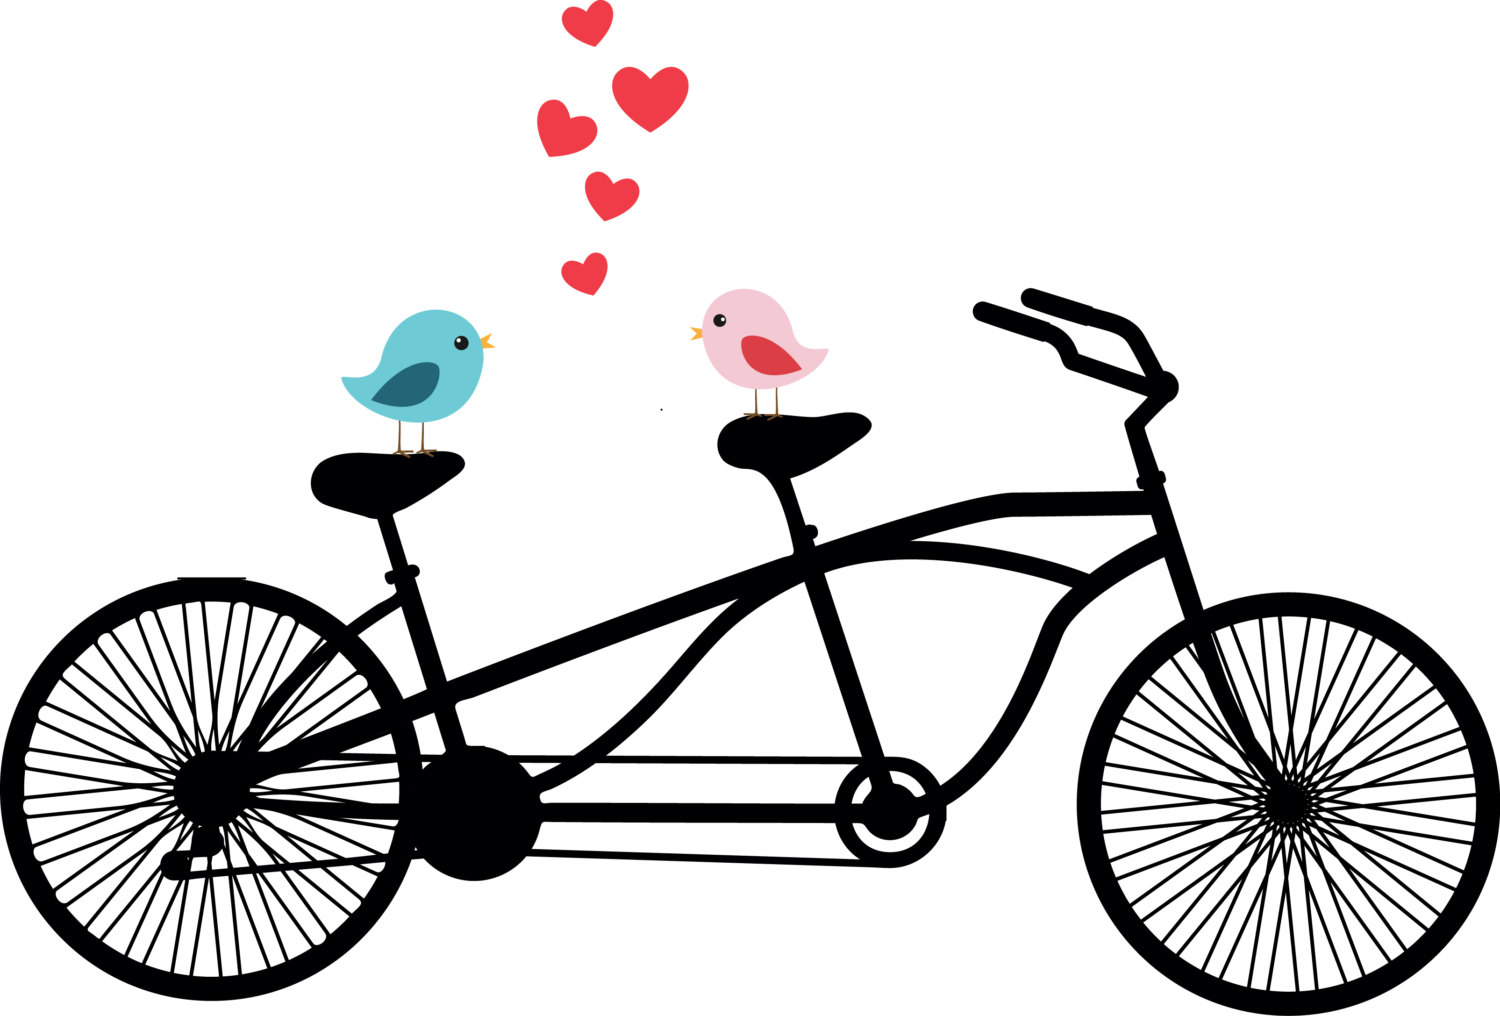 2 seater bike clipart image free stock Bike free bicycle clip art free vector for free download about 4 2 2 ... image free stock